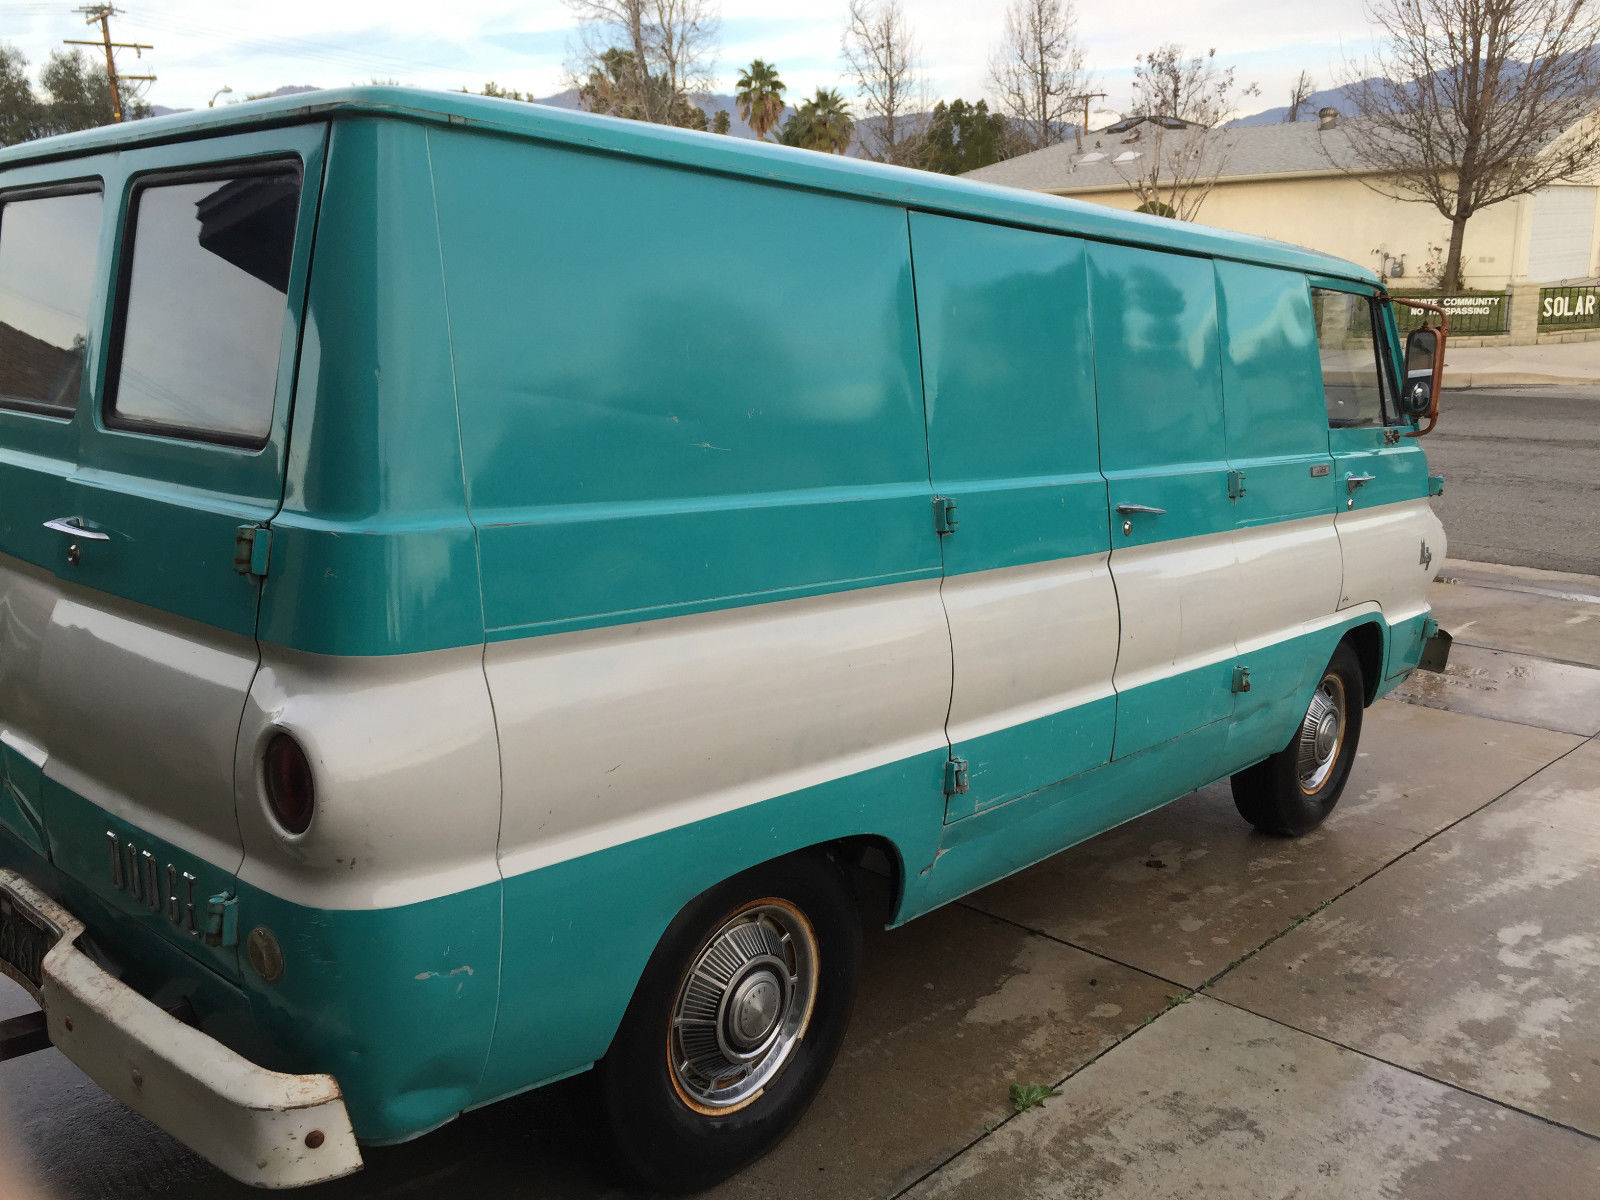 1968 dodge a108 orig paint panel van for sale in redlands  california  united states